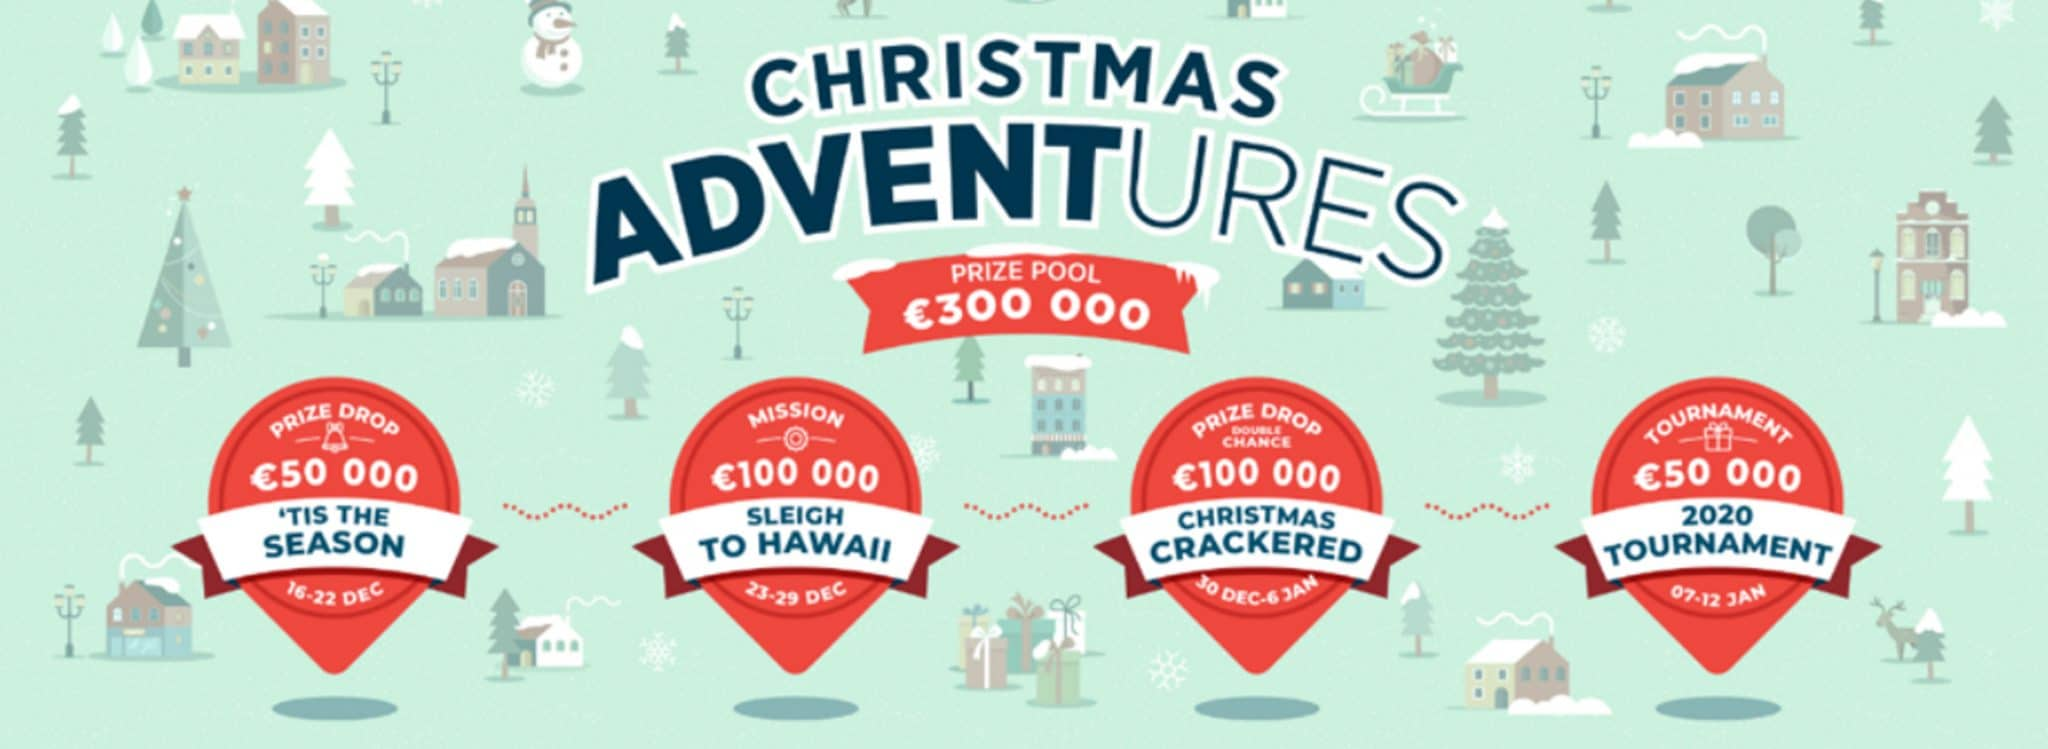 Yggdrasil Launches ADVENTures Christmas Campaign element02 - CasinoTop